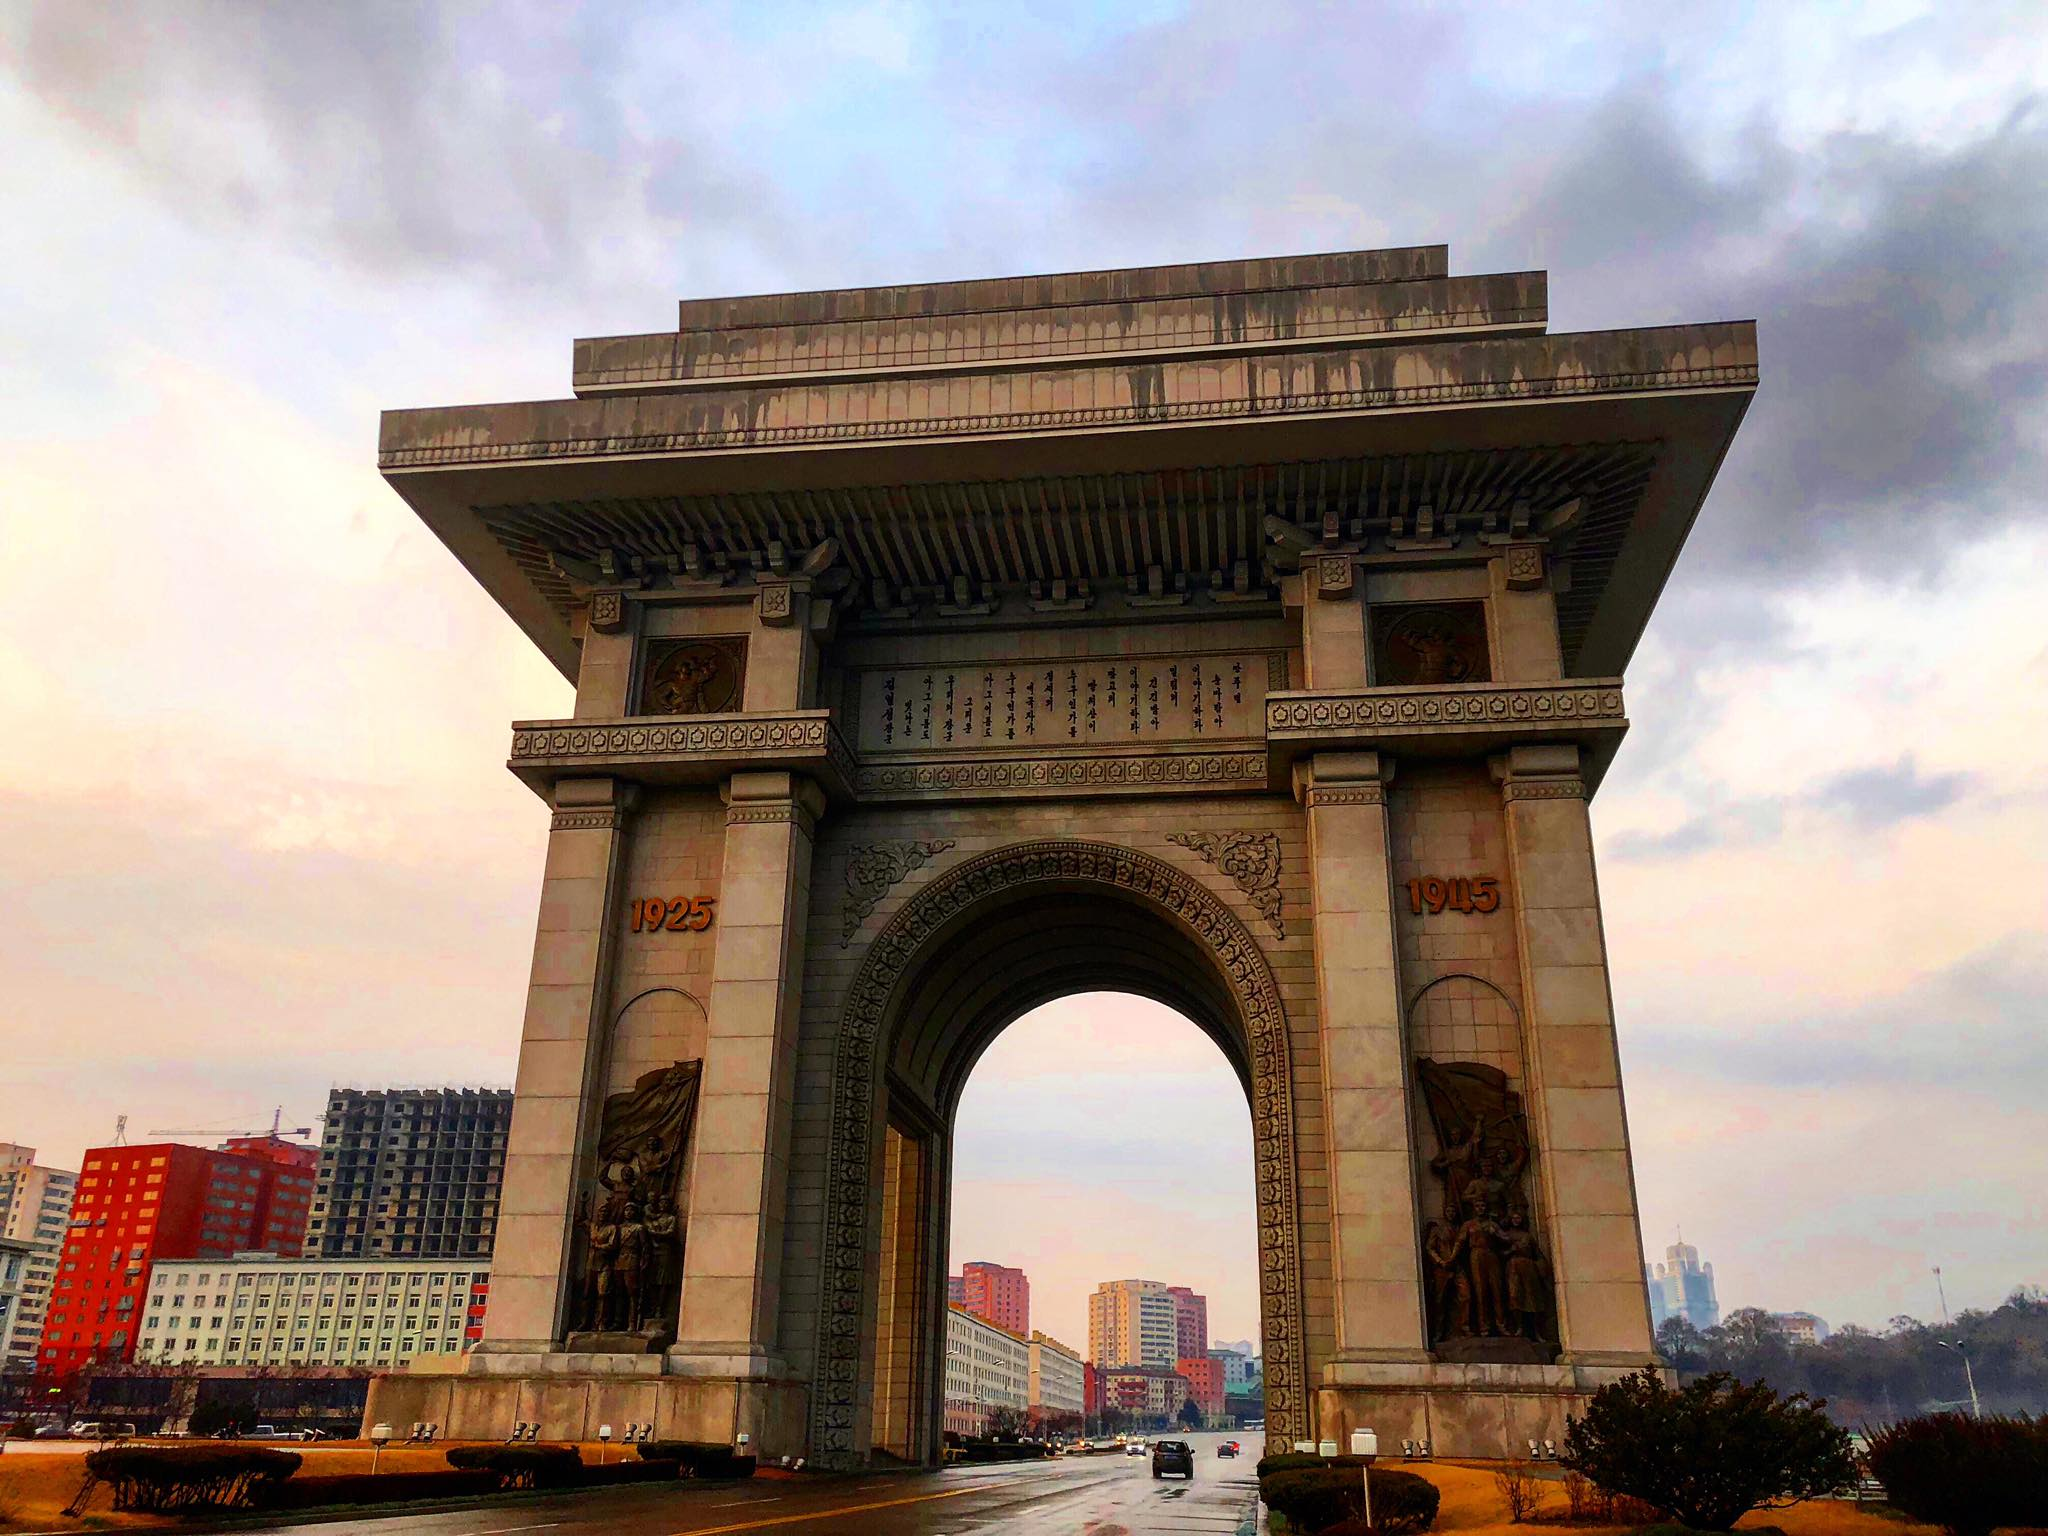 Arch of Triumph - Photo Credit: Crooked Compass